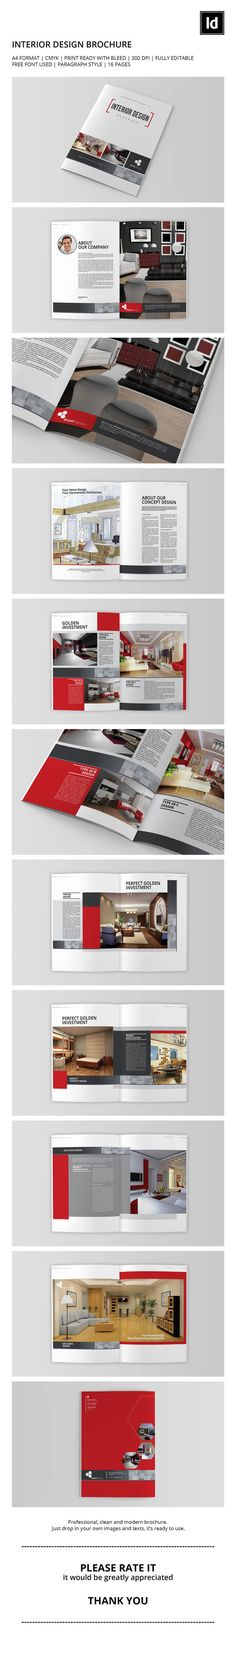 Interior Design Brochure  Brochures Interiors And Editorial